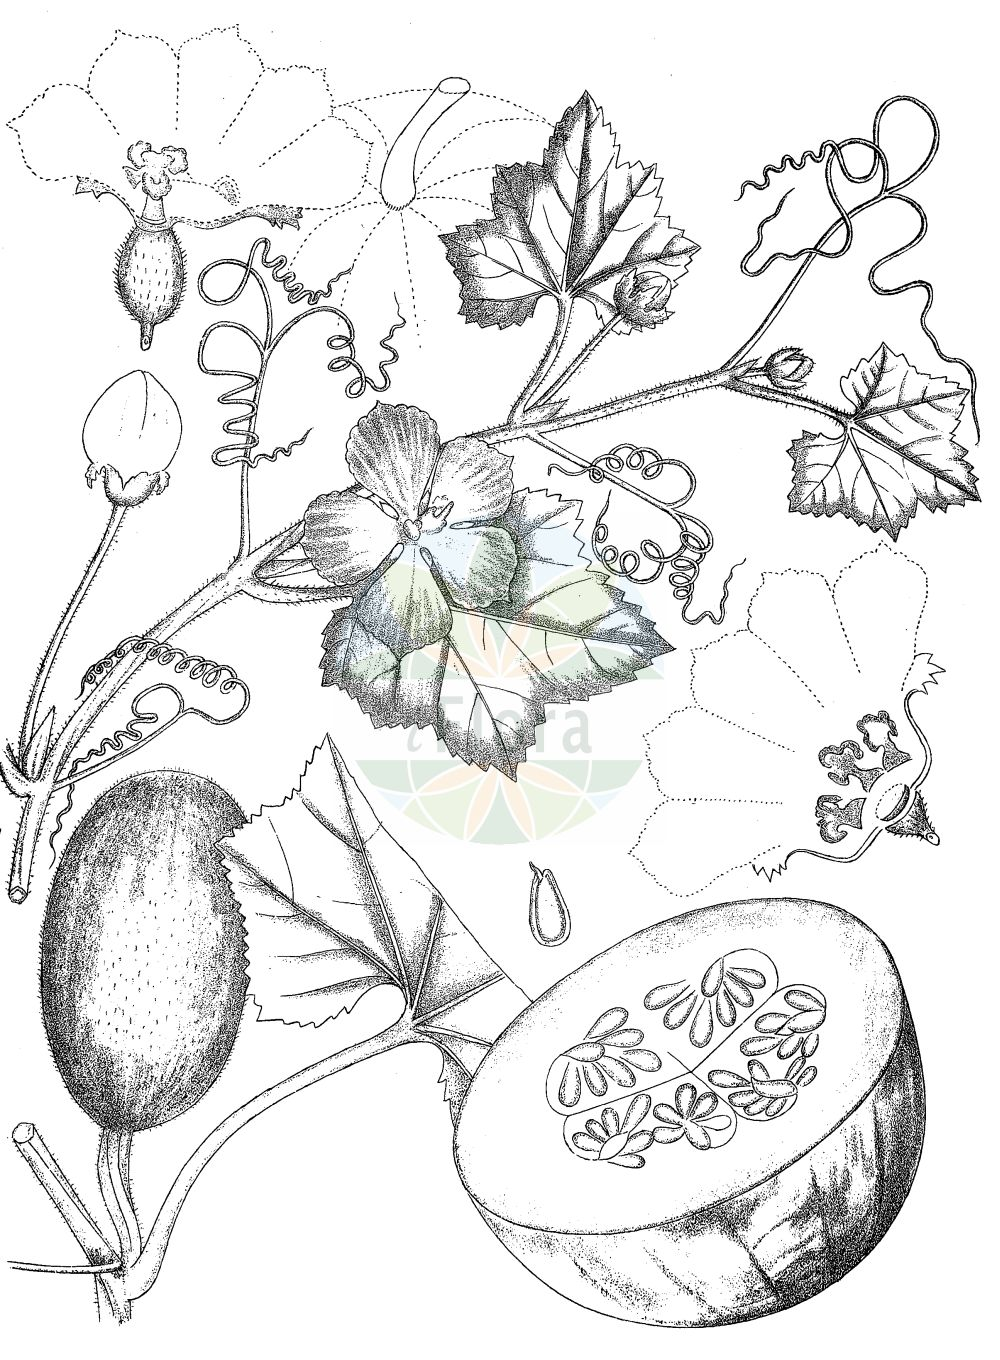 Historische Abbildung von Cucurbita pepo. Das Bild zeigt Blatt, Bluete, Frucht und Same. ---- Historical Drawing of Cucurbita pepo.The image is showing leaf, flower, fruit and seed.(Cucurbita pepo,Cucurbita aurantia,Cucurbita clodiensis,Cucurbita melopepo,Cucurbita oblonga,Cucurbita ovifera,Cucurbita pepo,Cucurbita verrucosa,Cucurbita,Cucurbitaceae,Kuerbisgewaechse,Cucurbit family,Blatt,Bluete,Frucht,Same,leaf,flower,fruit,seed,Kirtikar & Basu (1918))